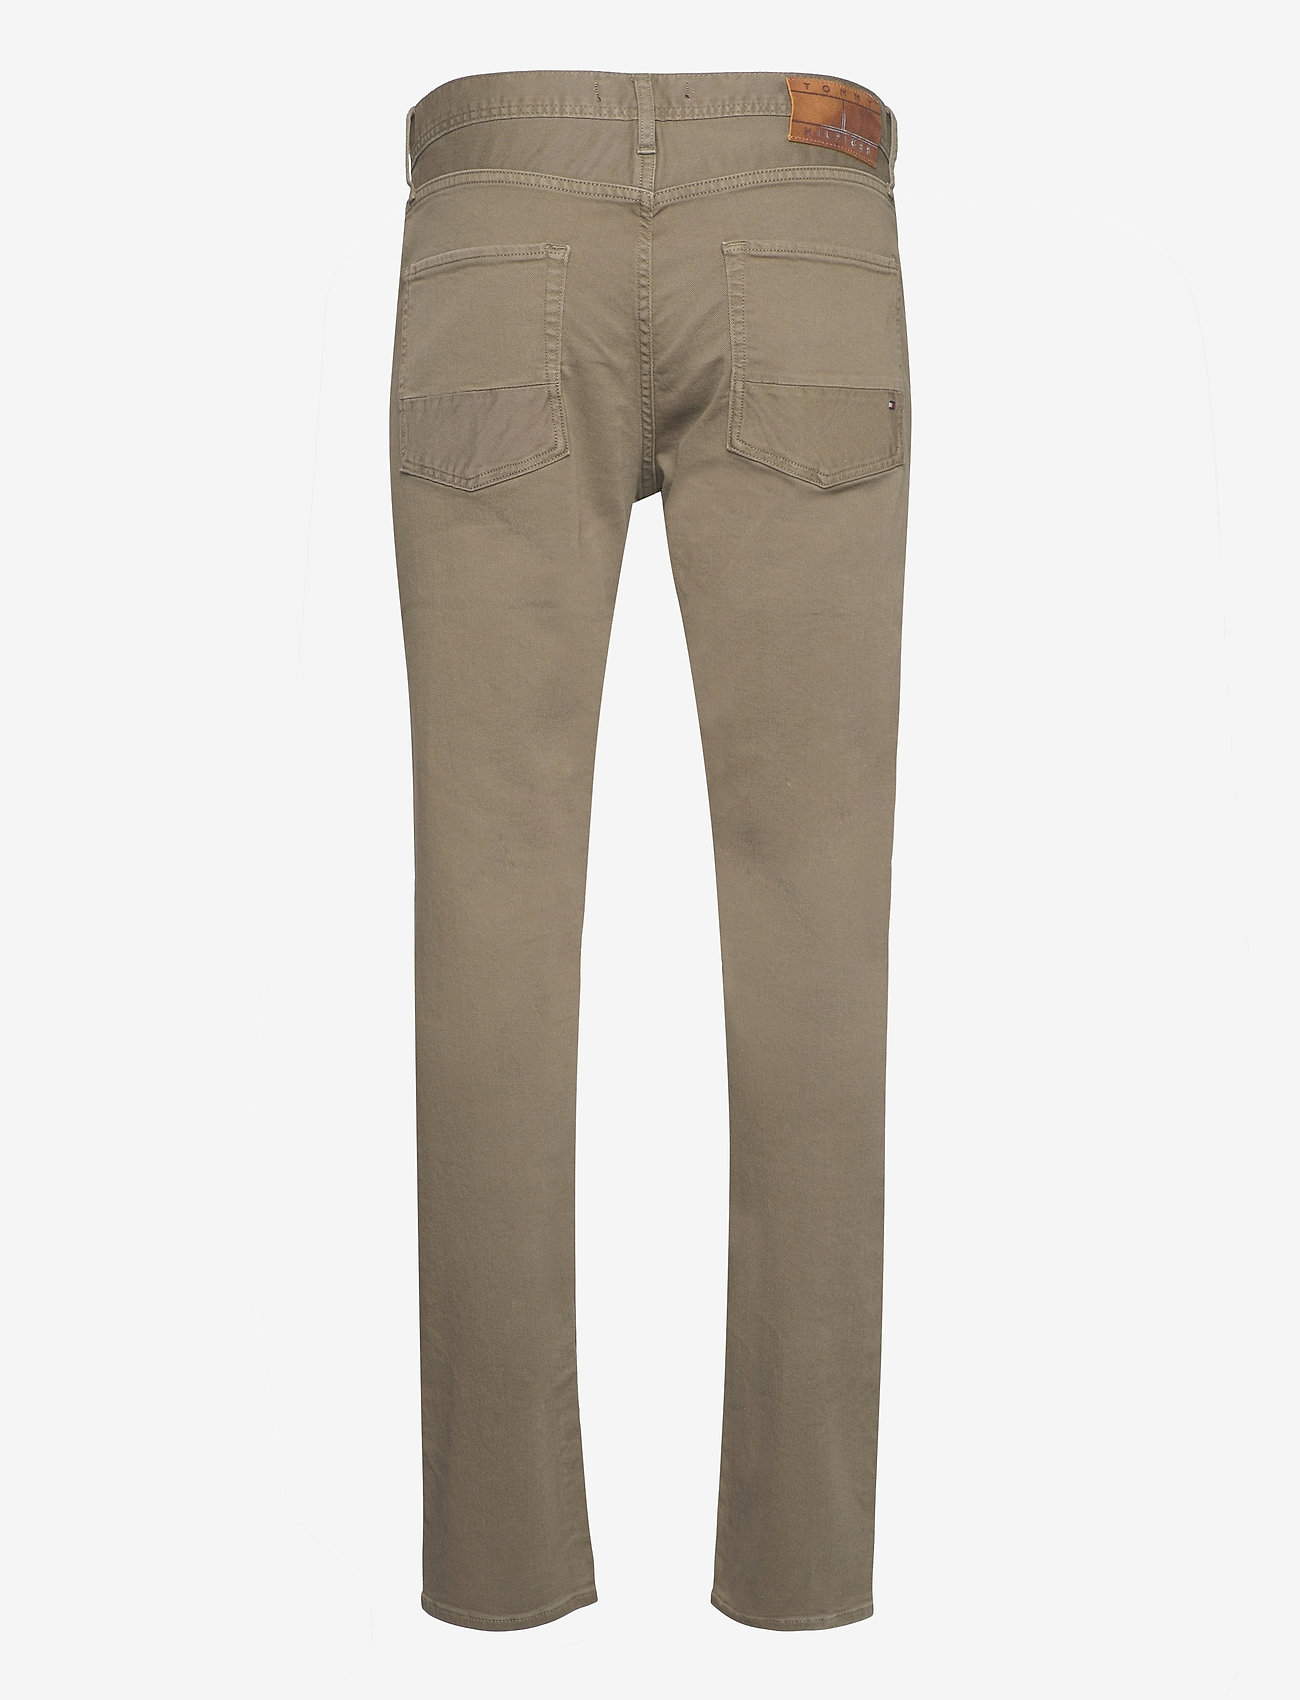 Tommy Hilfiger - STRAIGHT DENTON STR COLOUR - slim jeans - faded military - 1